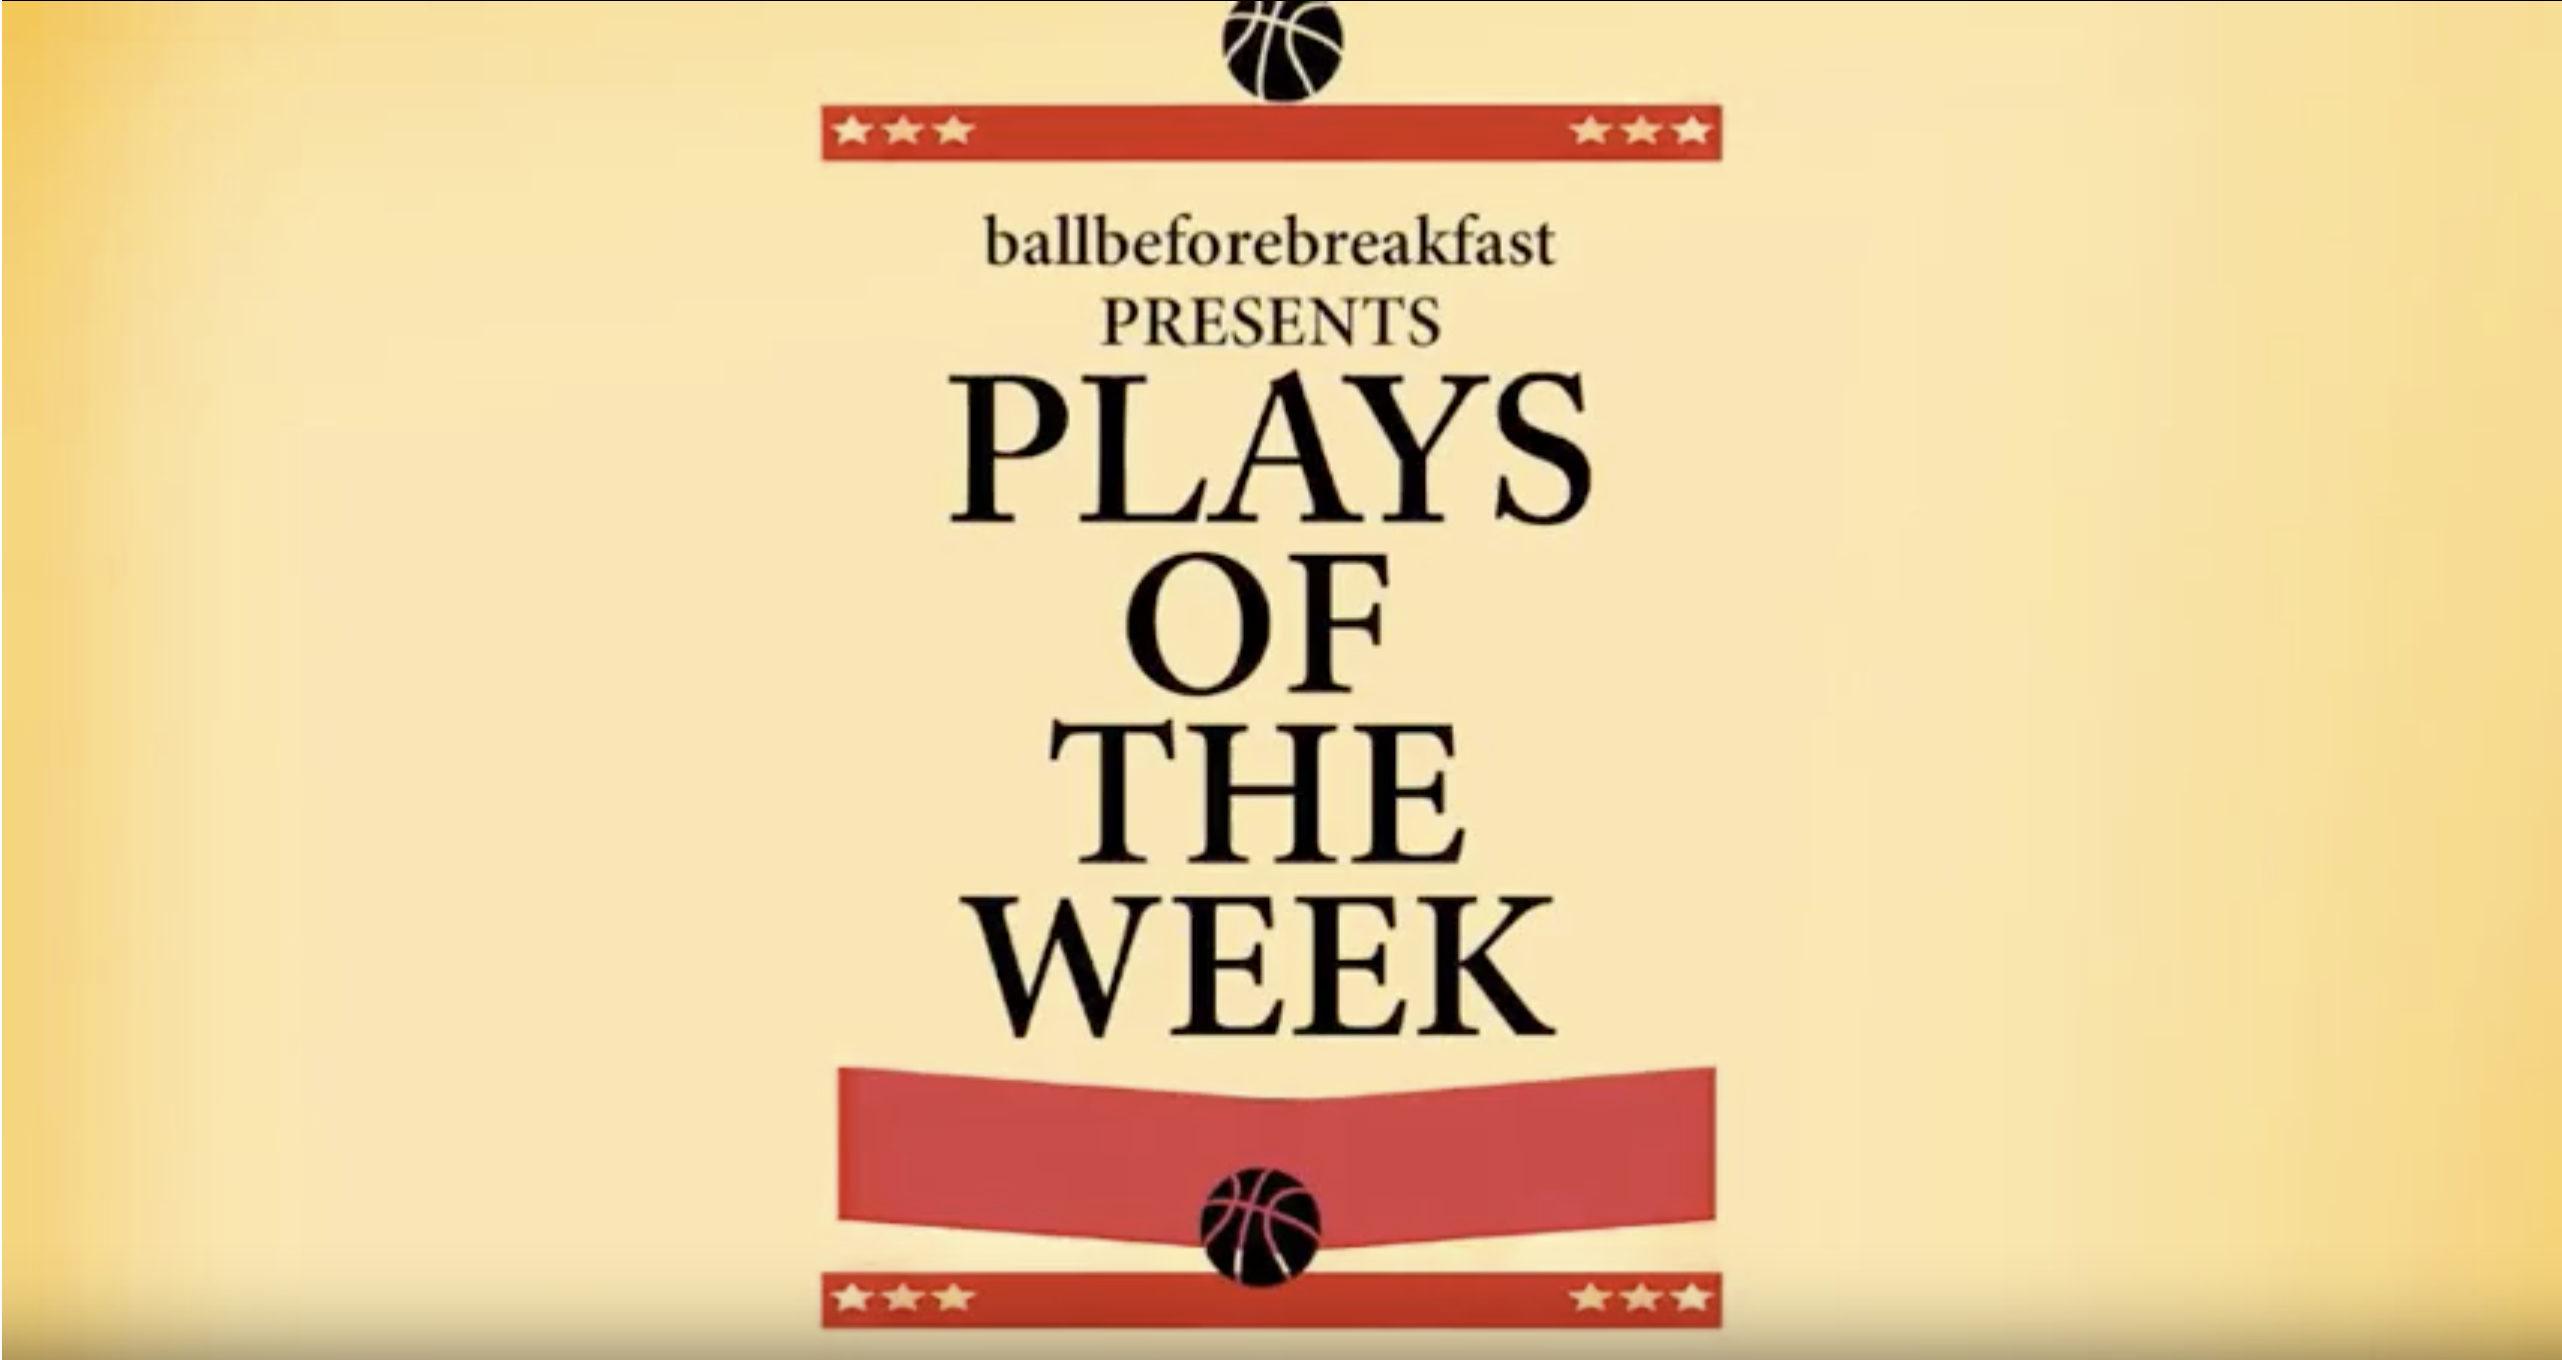 Plays of the week 11.2